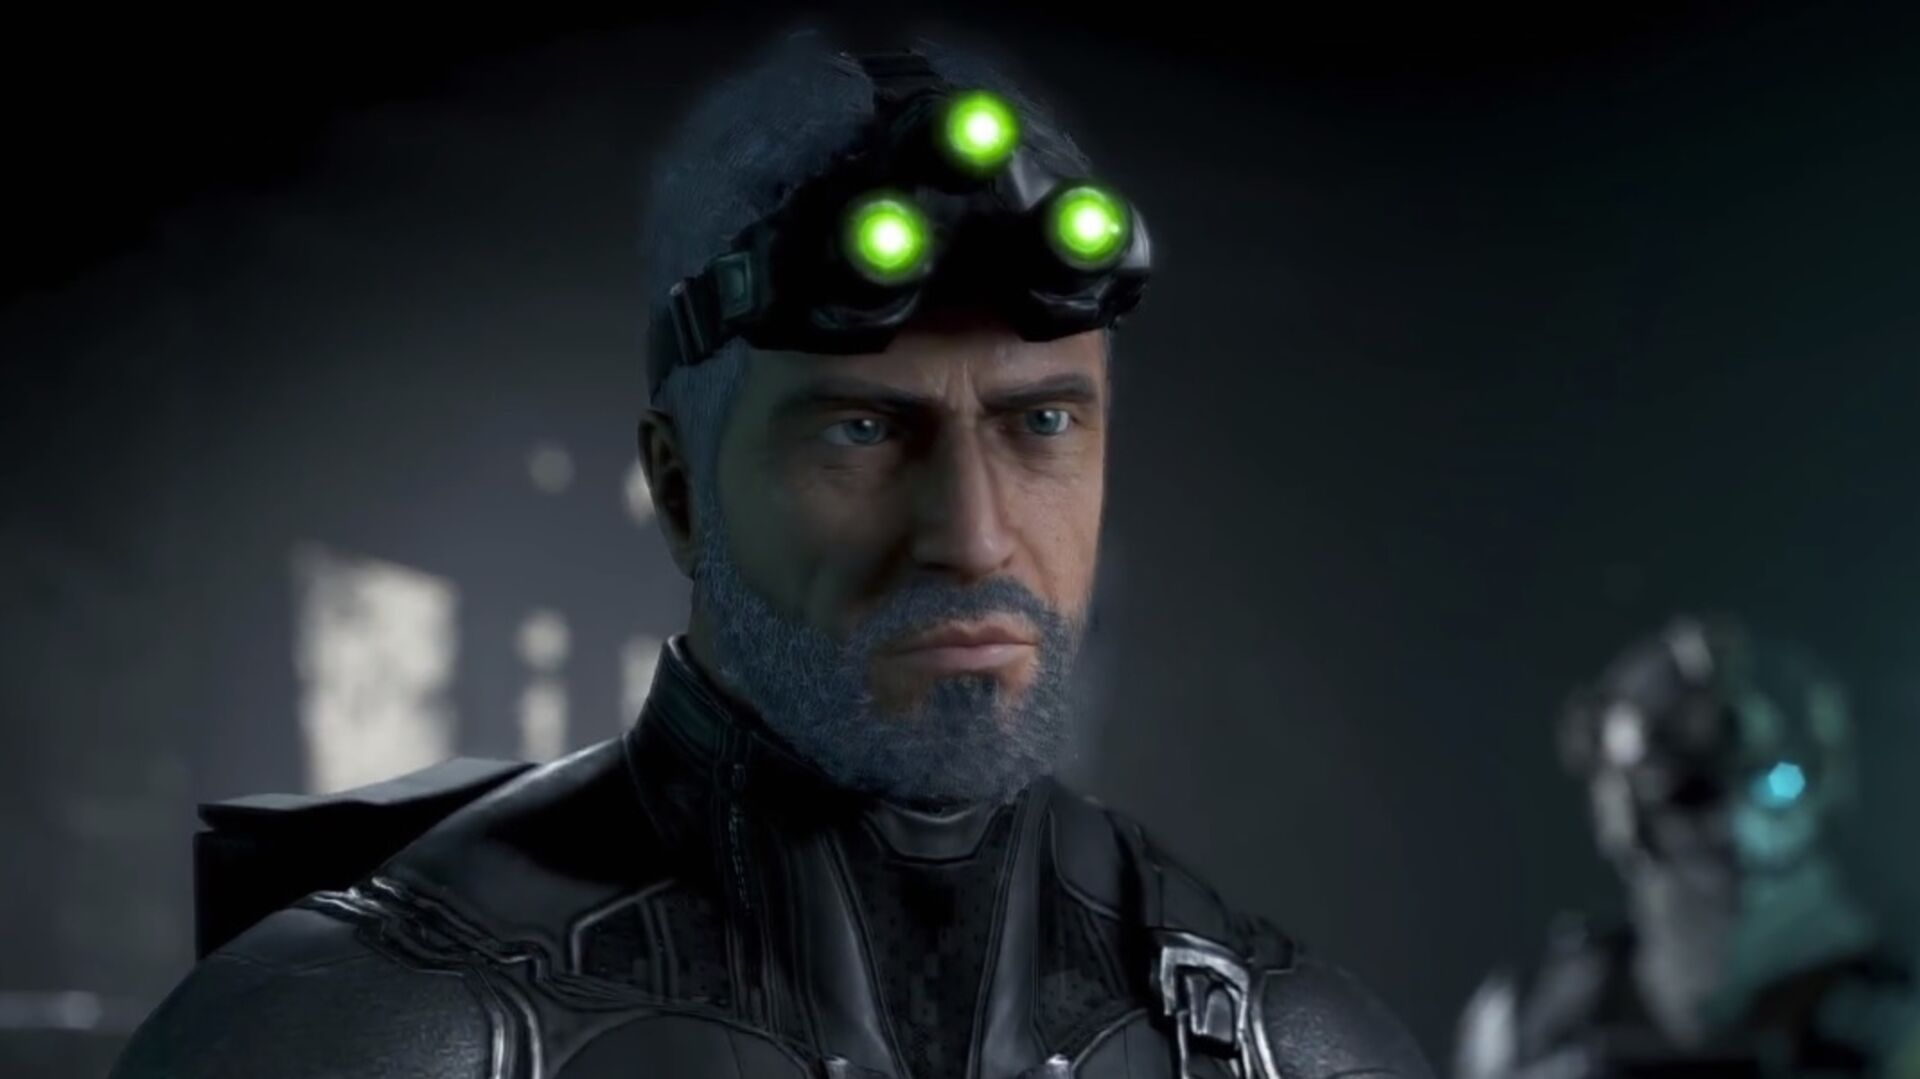 Does Sam Fisher's cameo in Ghost Recon Wildlands lead into a new